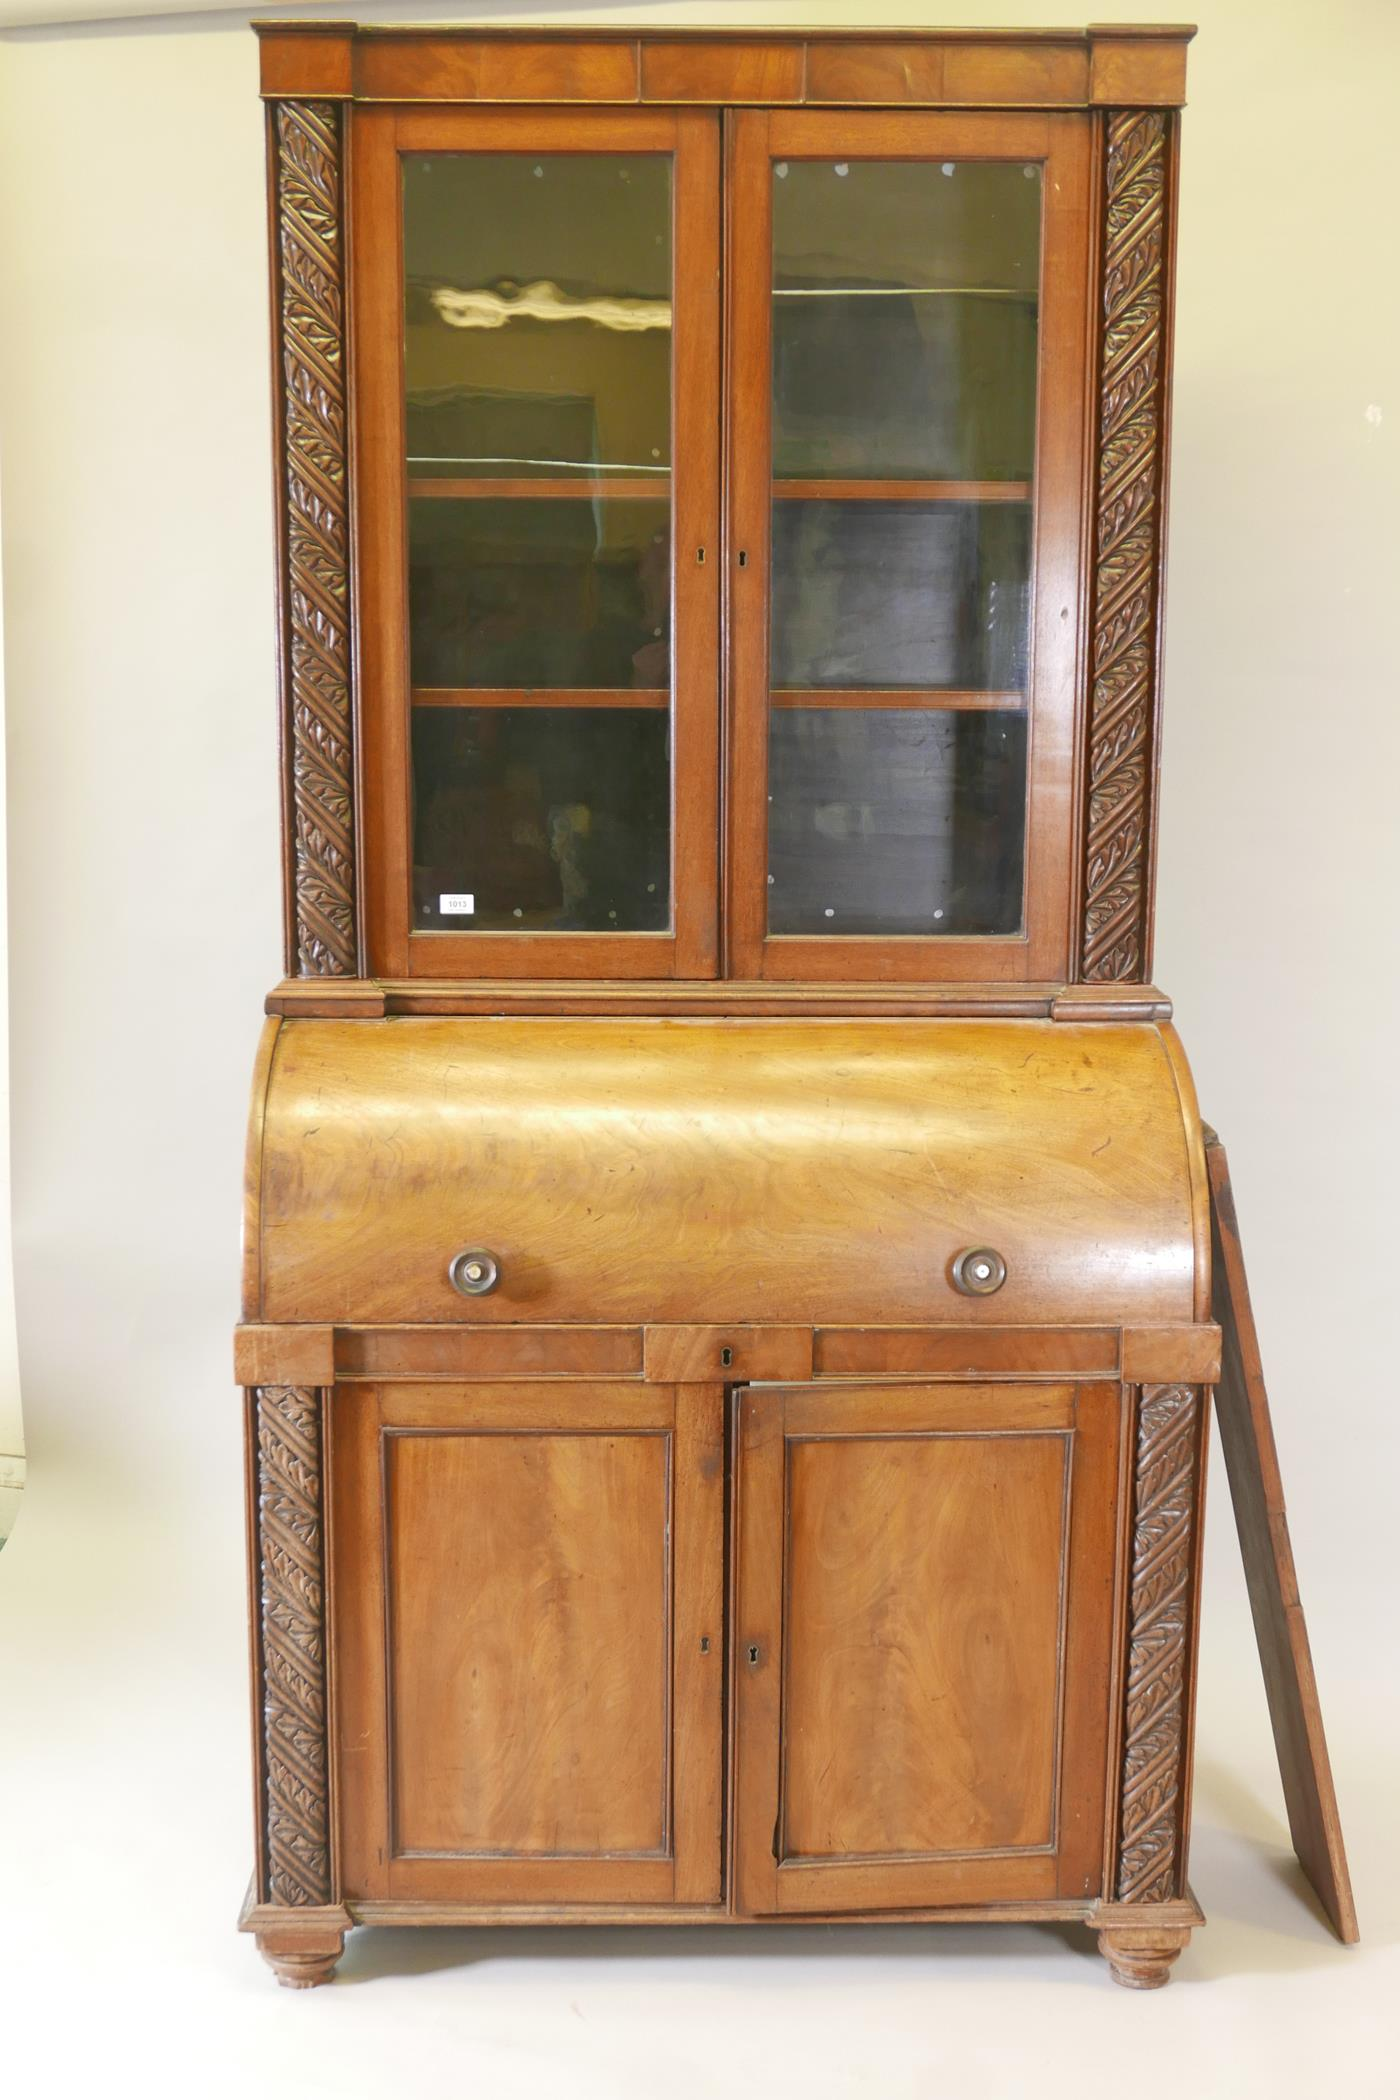 A Victorian cylinder top bureau bookcase, the upper section with two glazed doors and carved